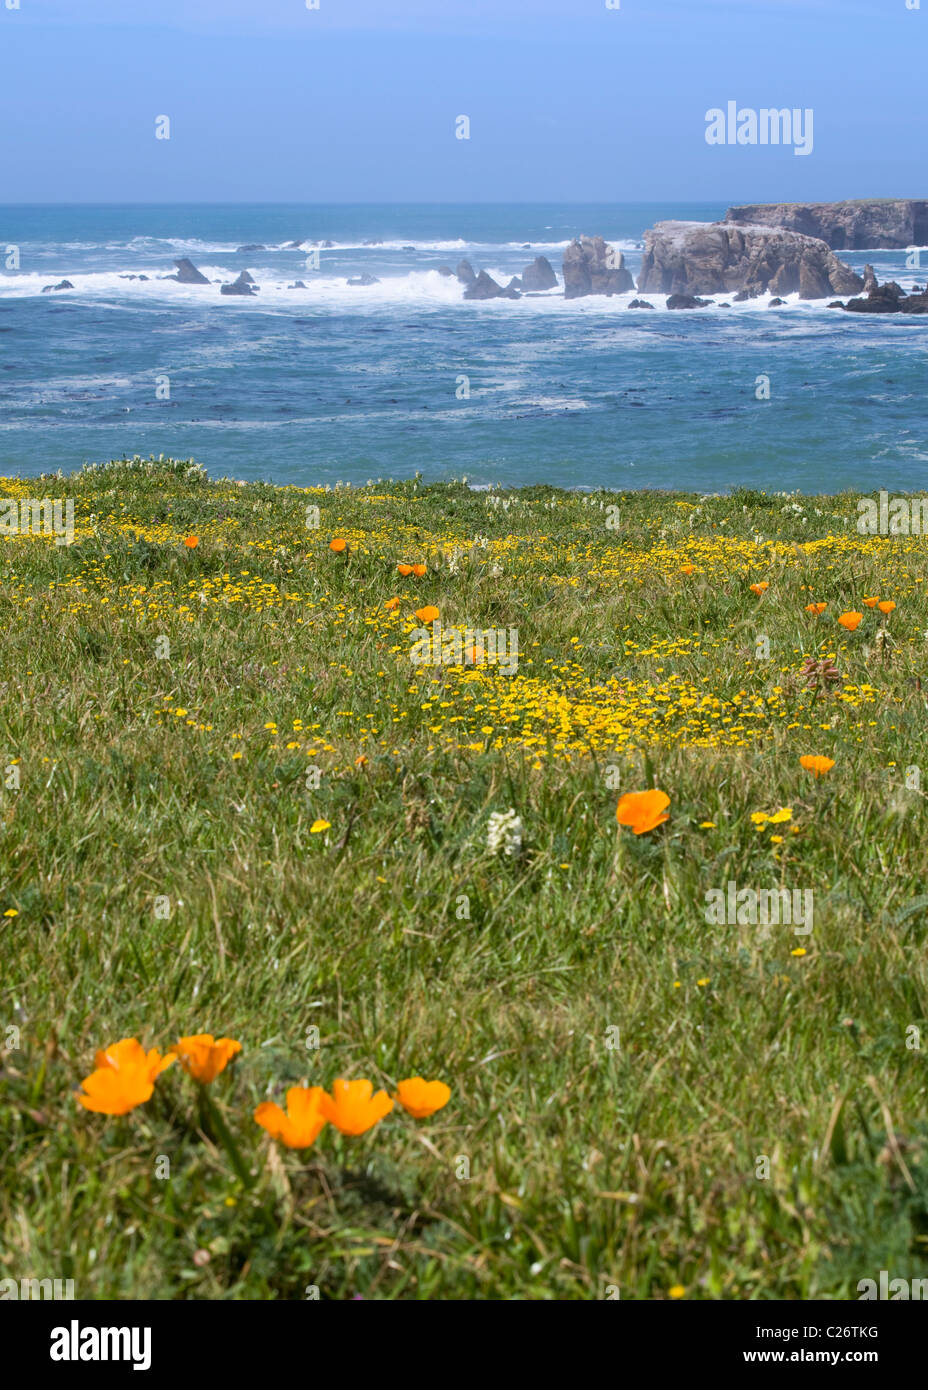 Wildflower patch on rocky shoreline, Central California, USA - Stock Image